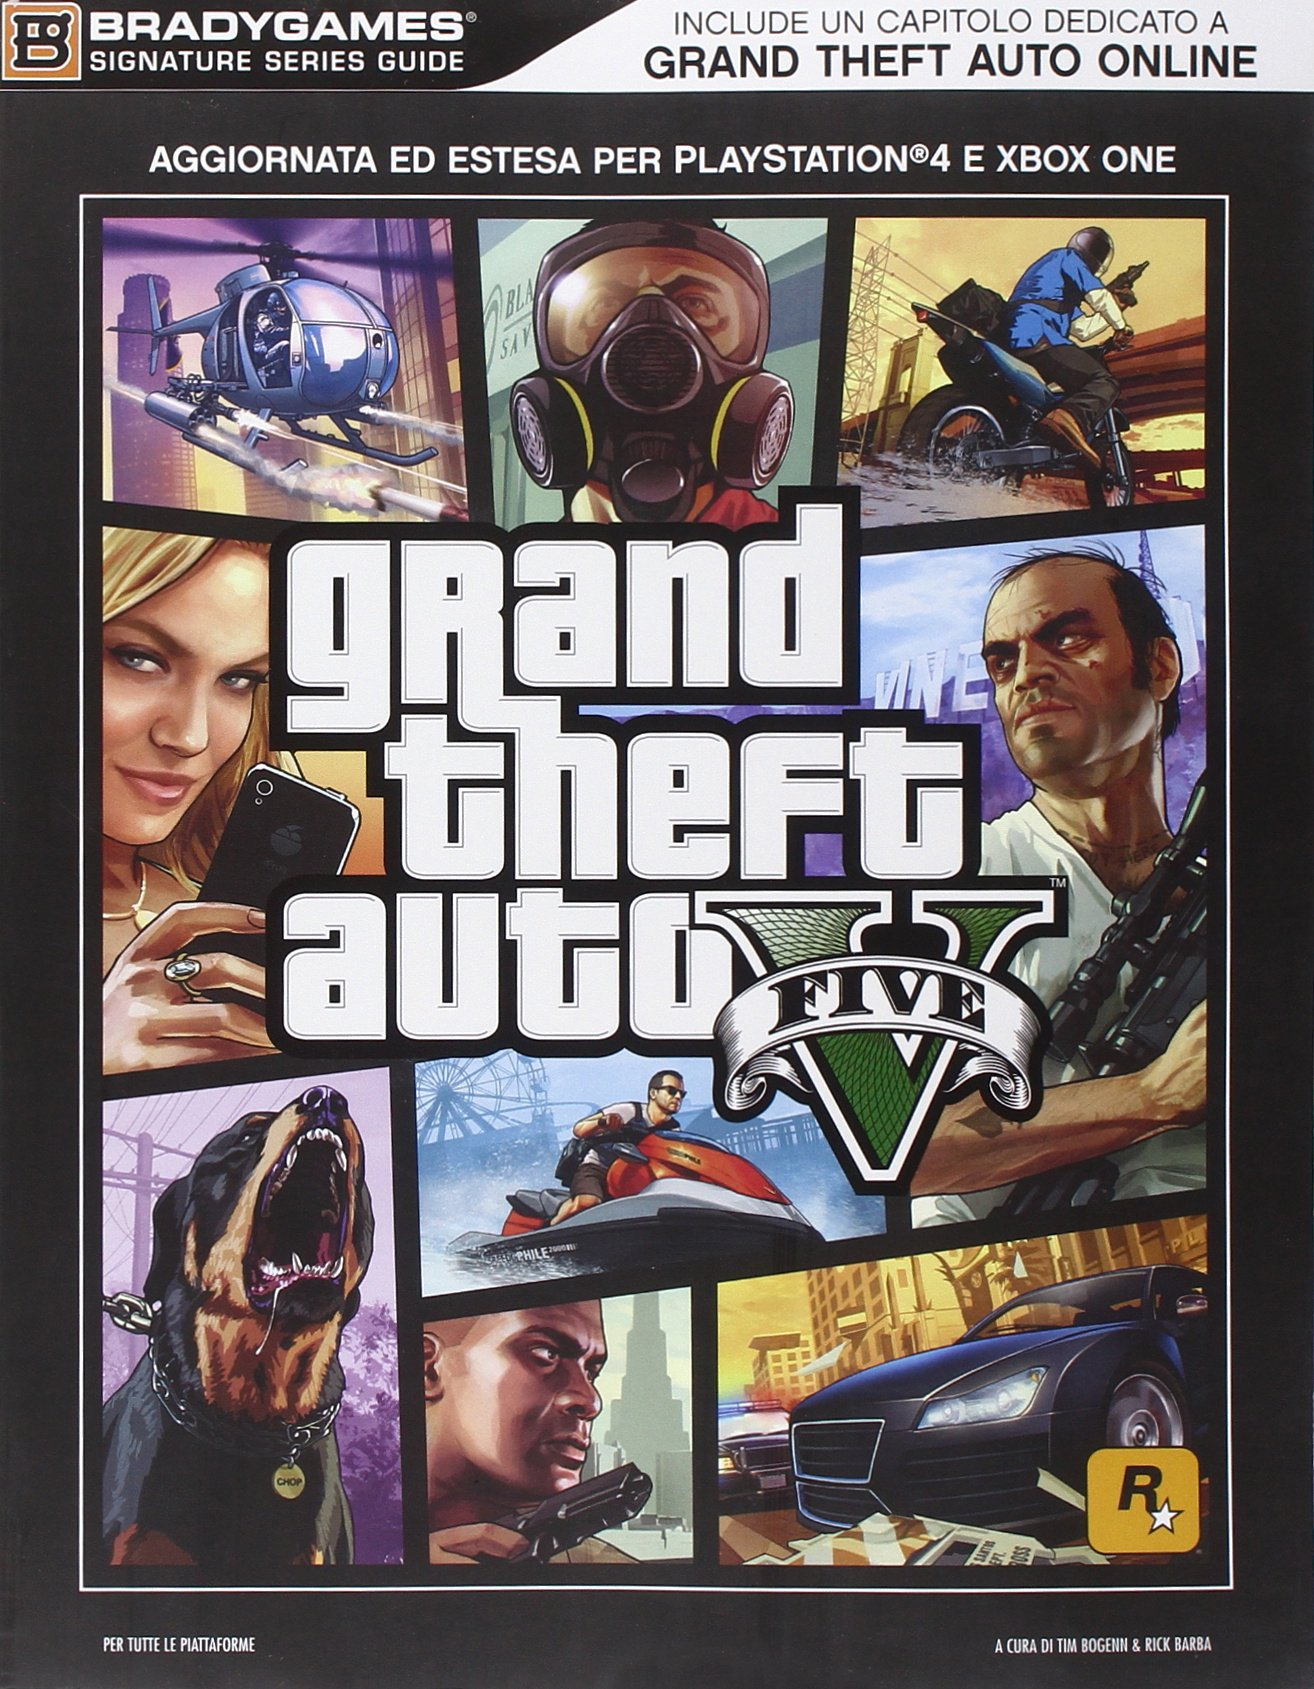 Grand theft auto V. Guida strategica ufficiale: Amazon.es: Brady Games: Libros en idiomas extranjeros